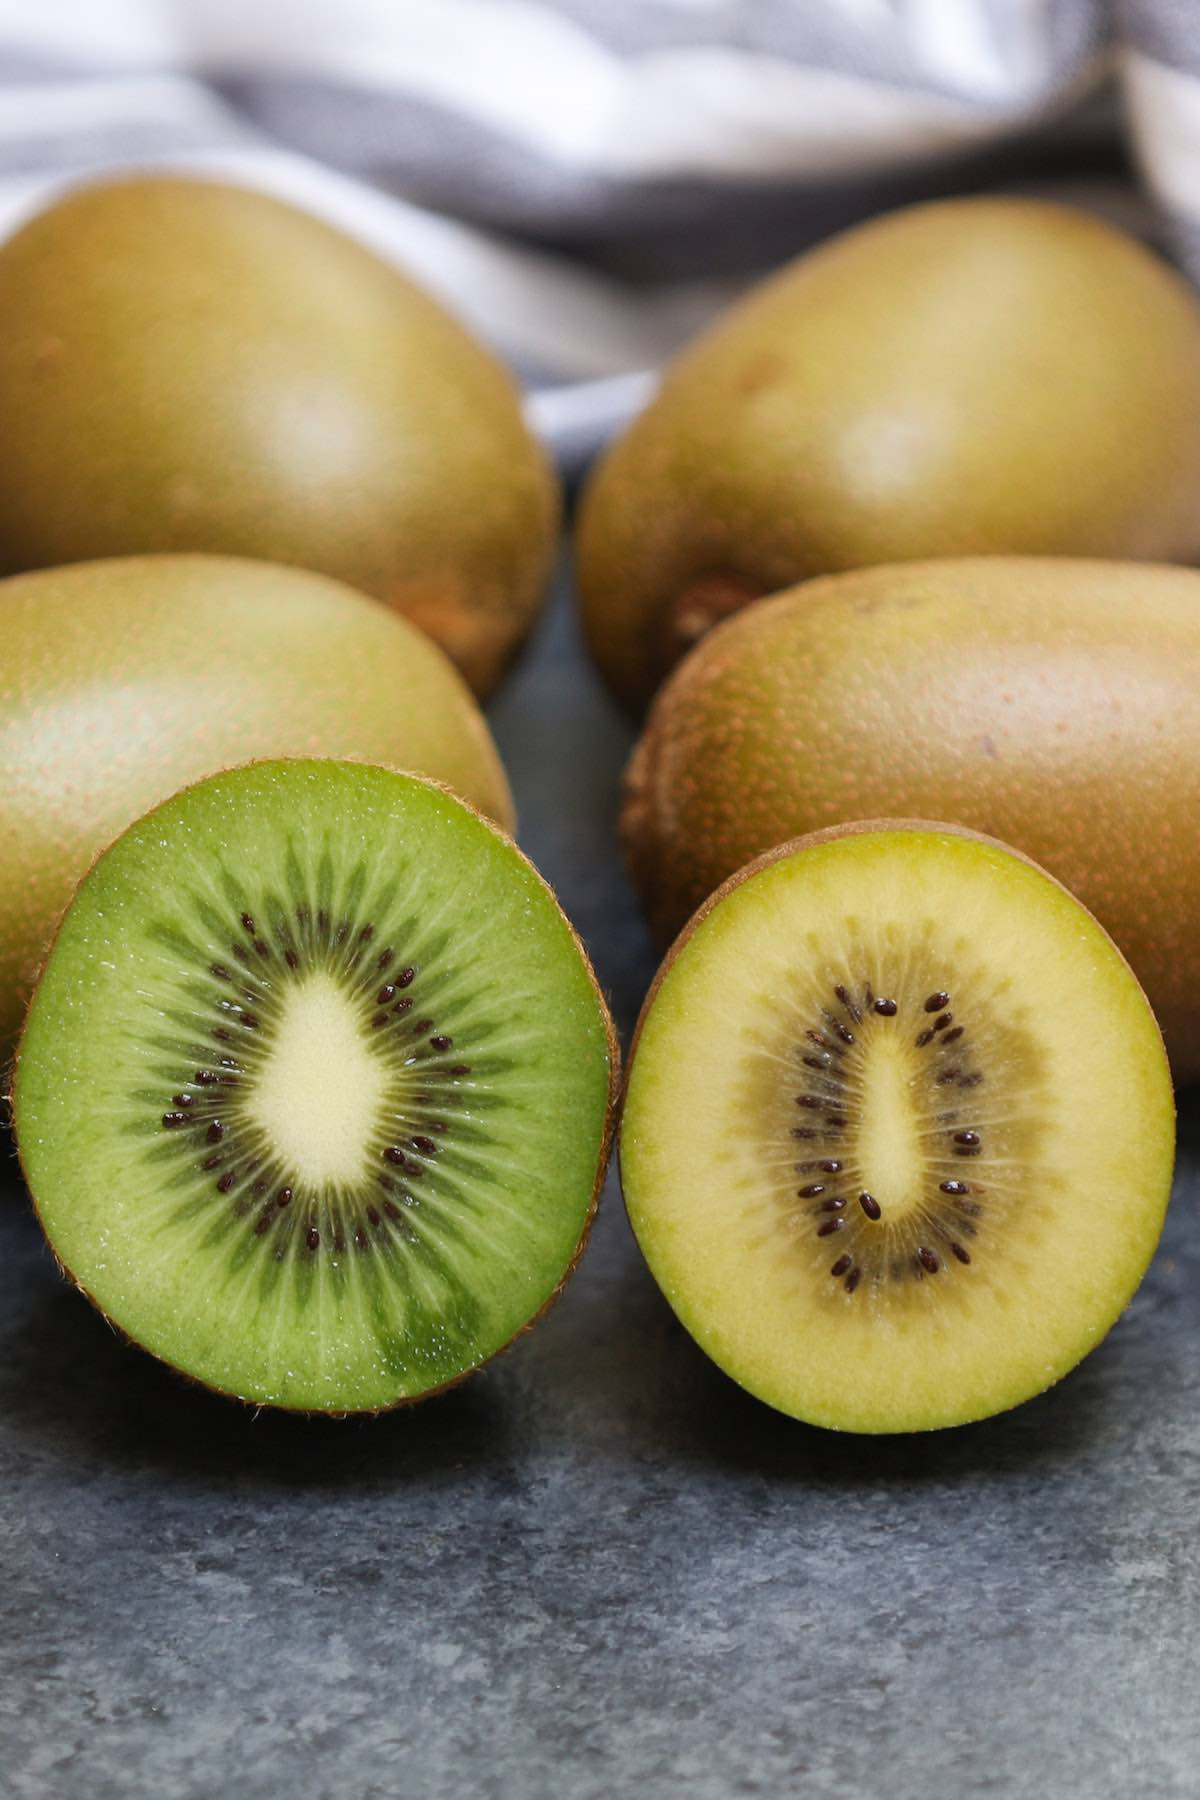 Side-by-side comparison of green kiwifruit and yellow kiwi showing the different colors of the flesh